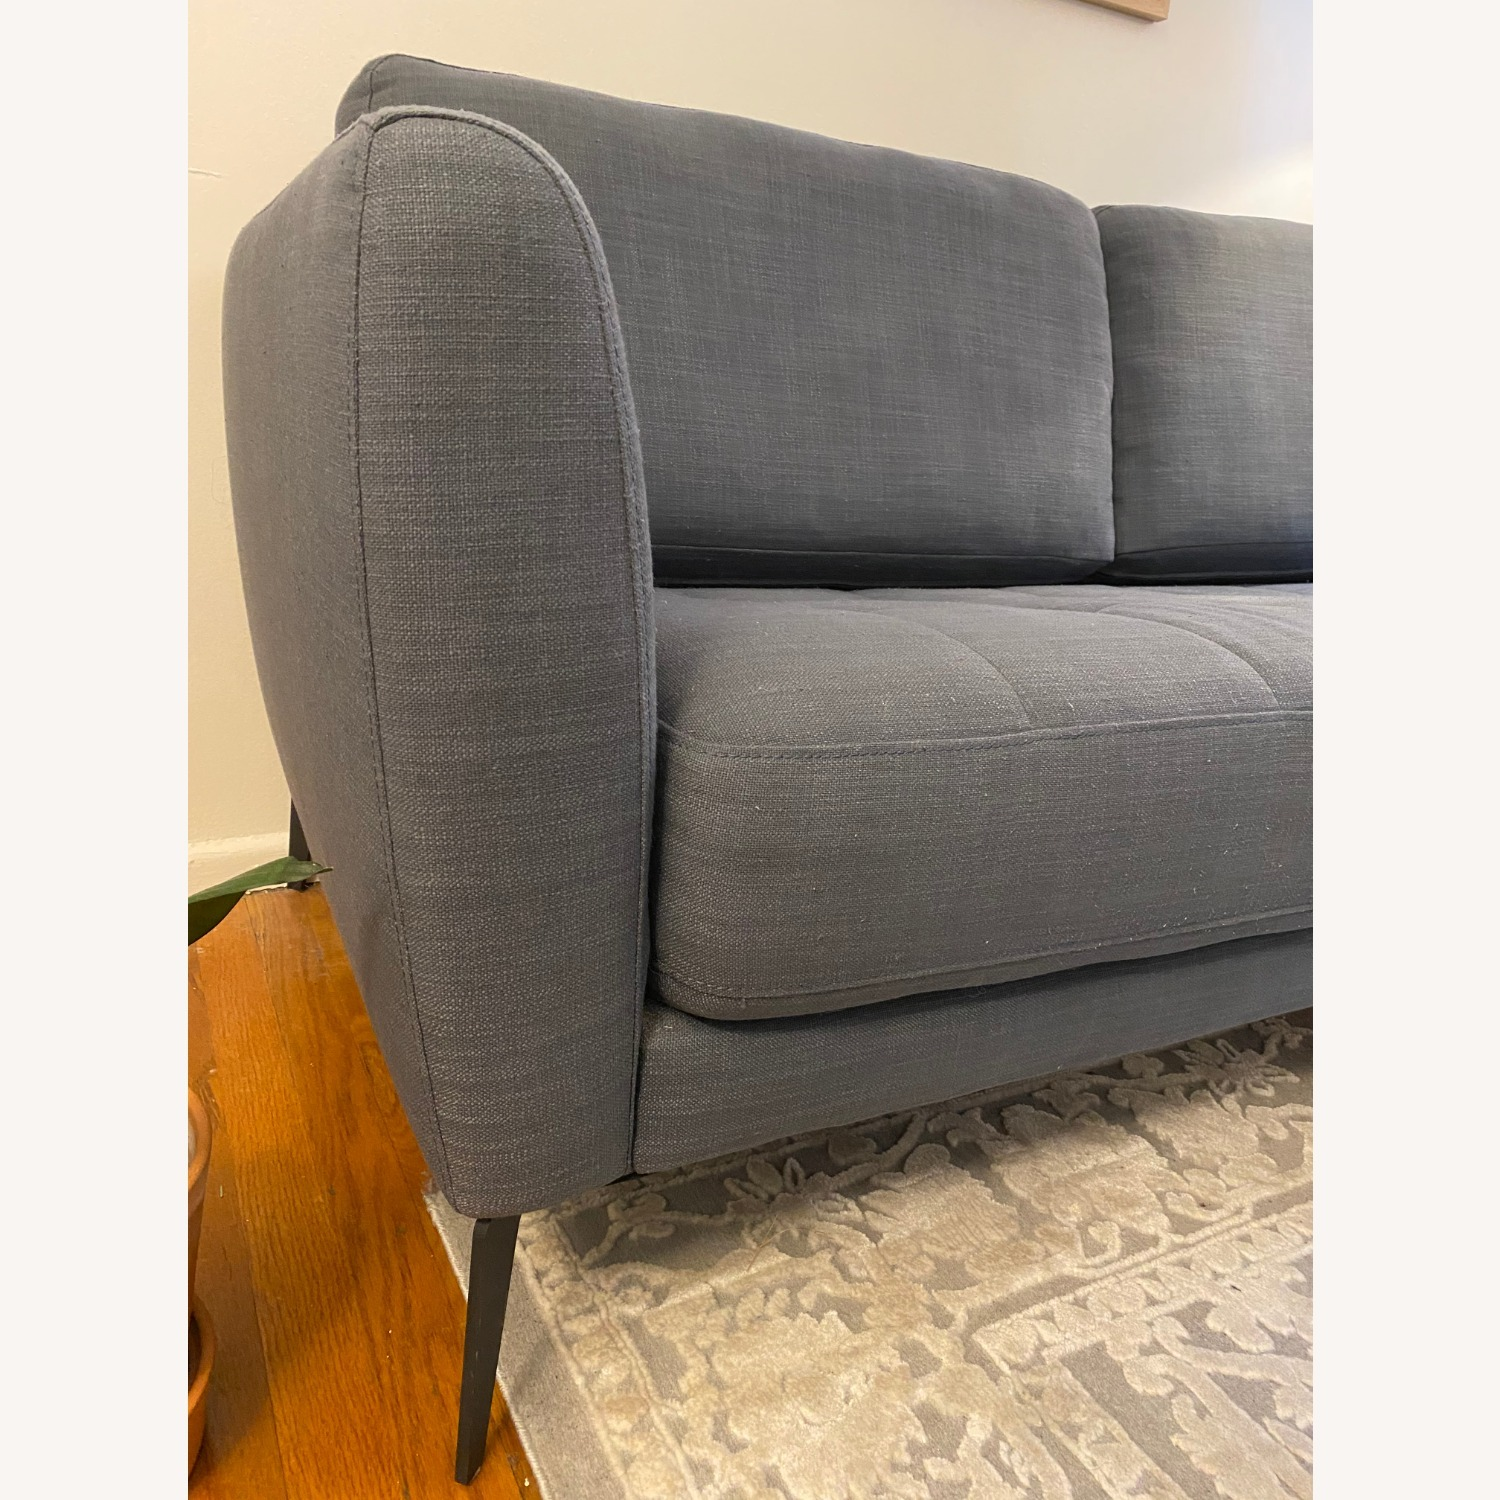 Macy's Tufted Modern Couch Sofa - image-3